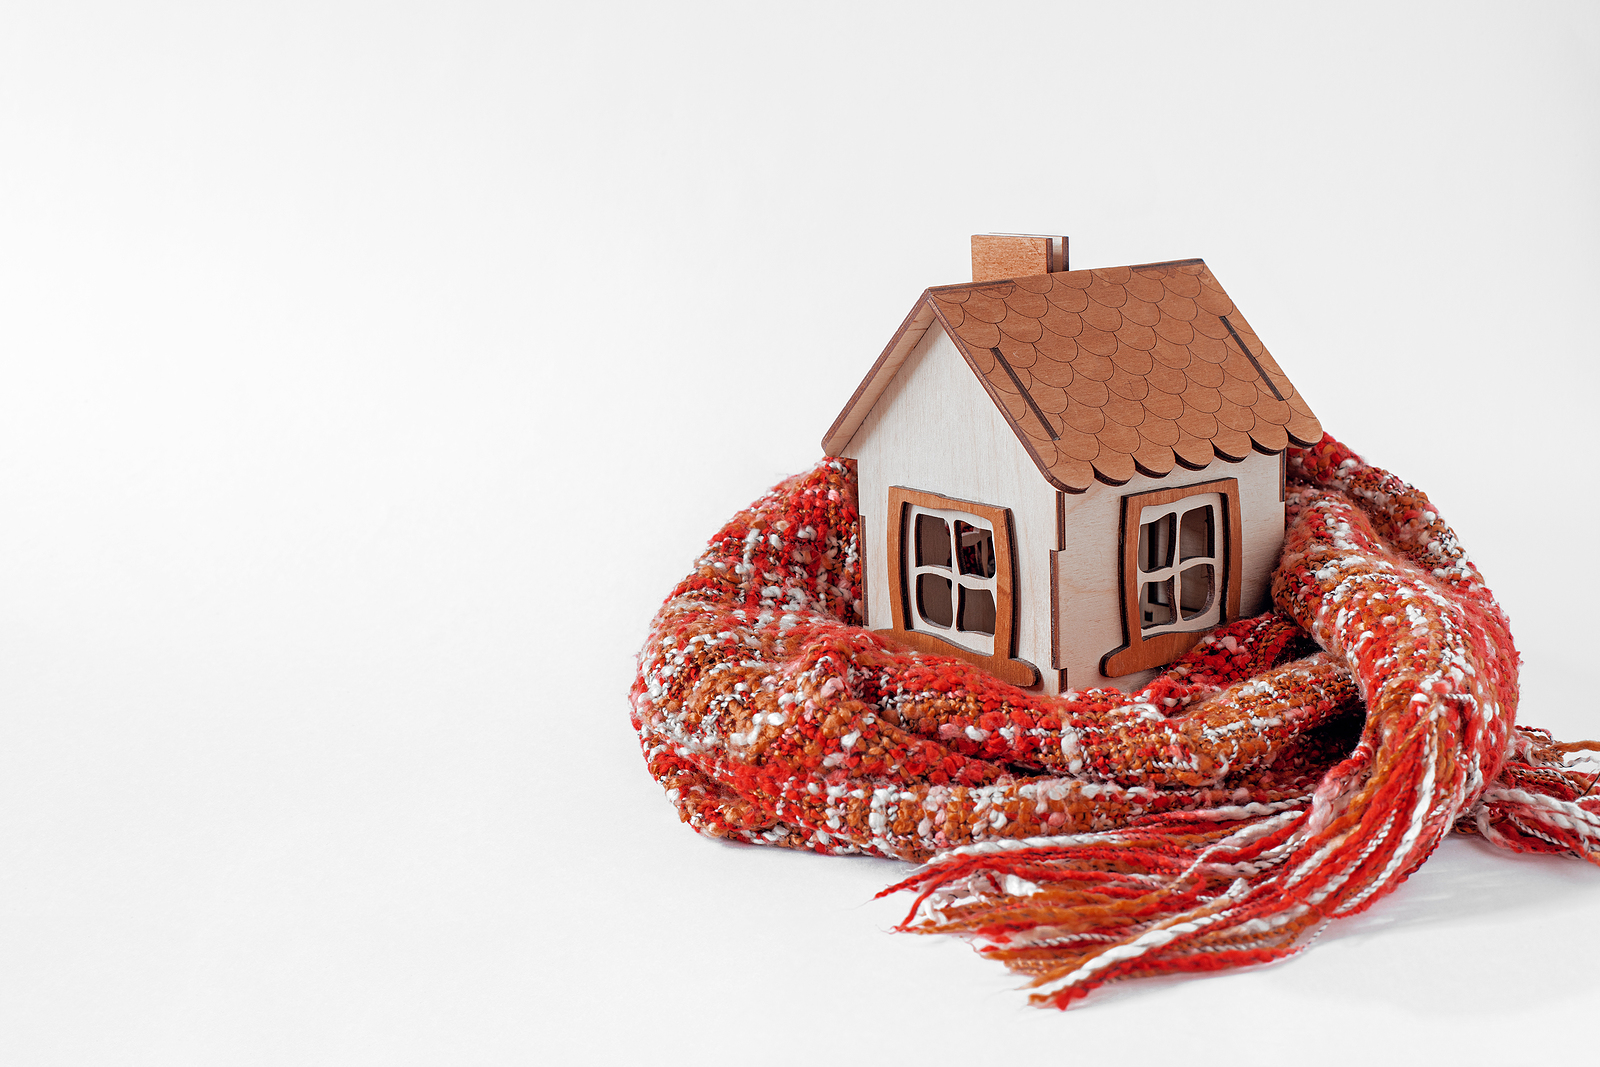 Small, toy house wrapped in a scarf.